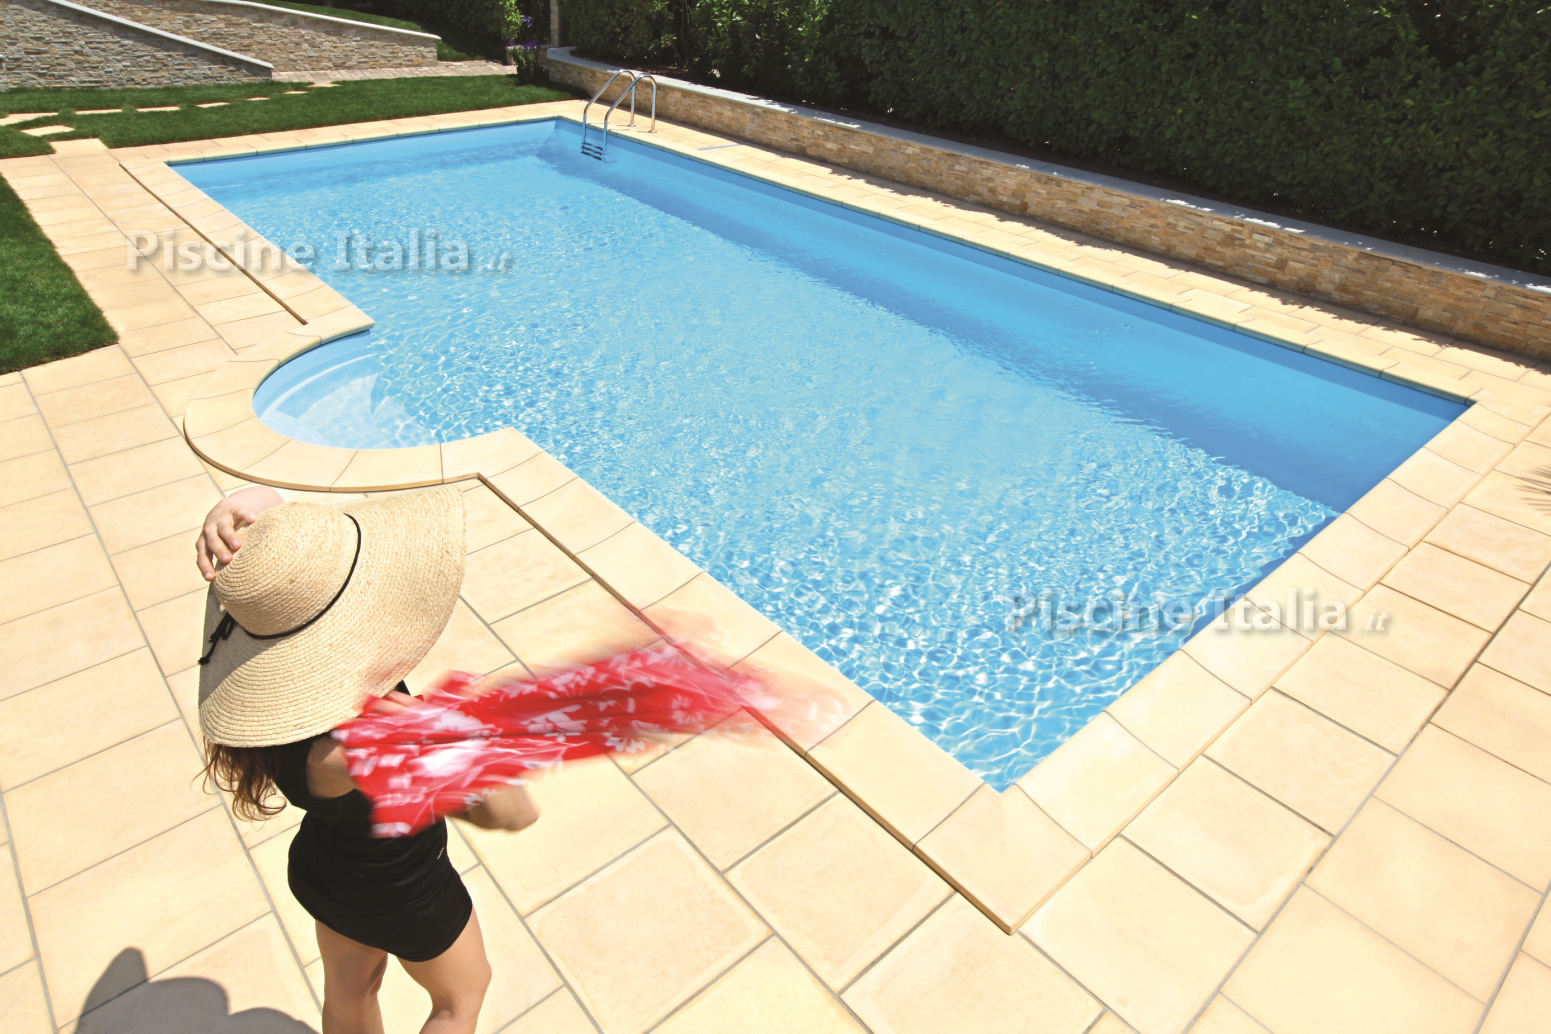 Piscine interrate in kit Futura - Immagine 10